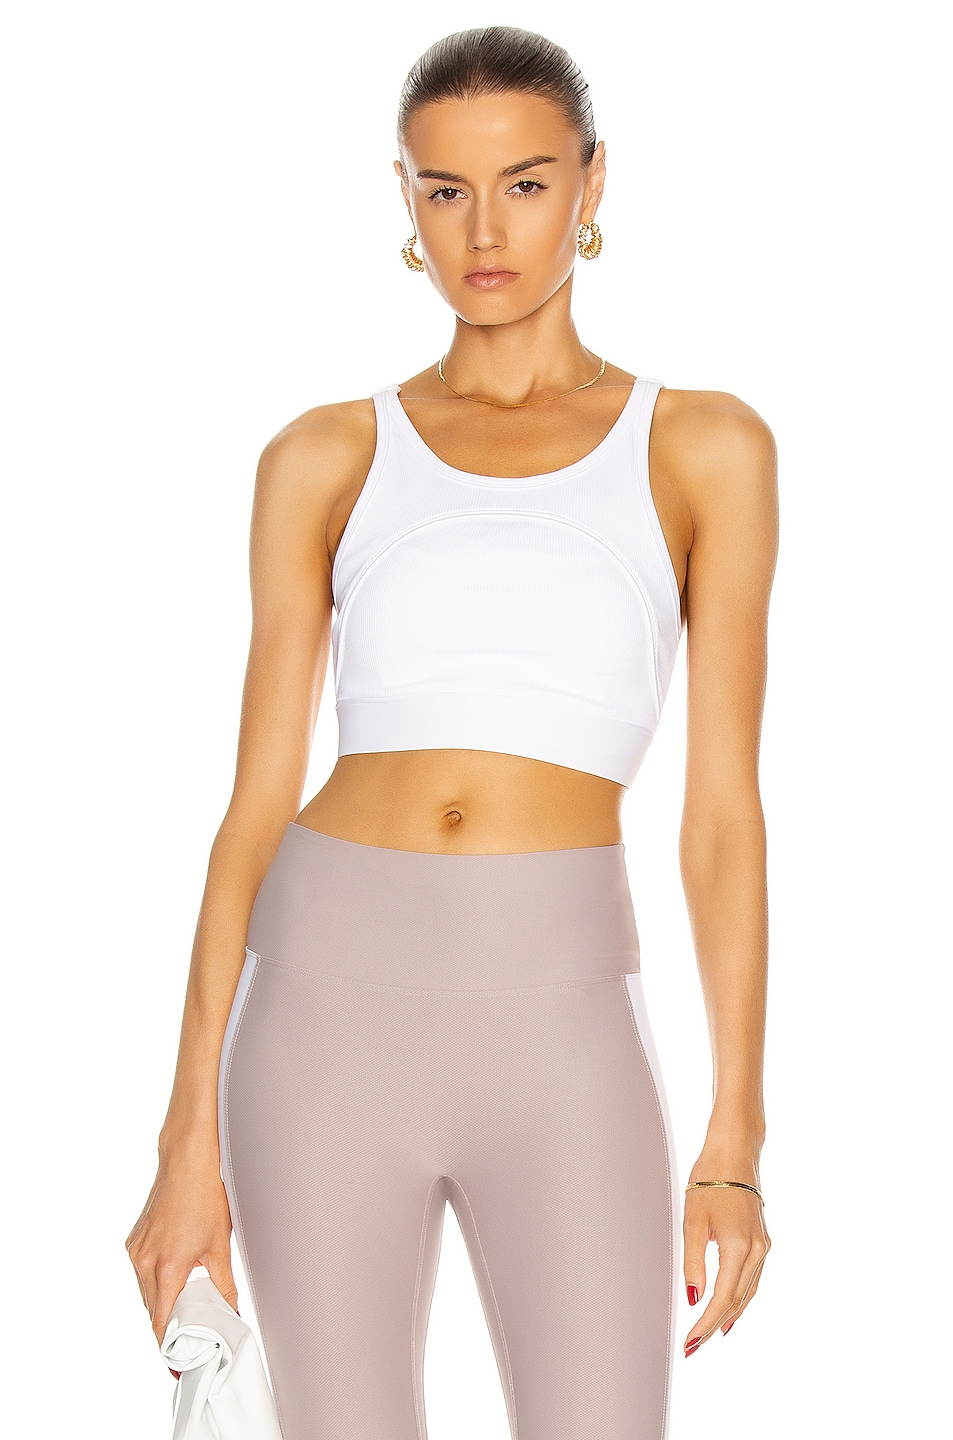 Rubio Tank by Nylora, available on fwrd.com for $40 Olivia Culpo Top Exact Product